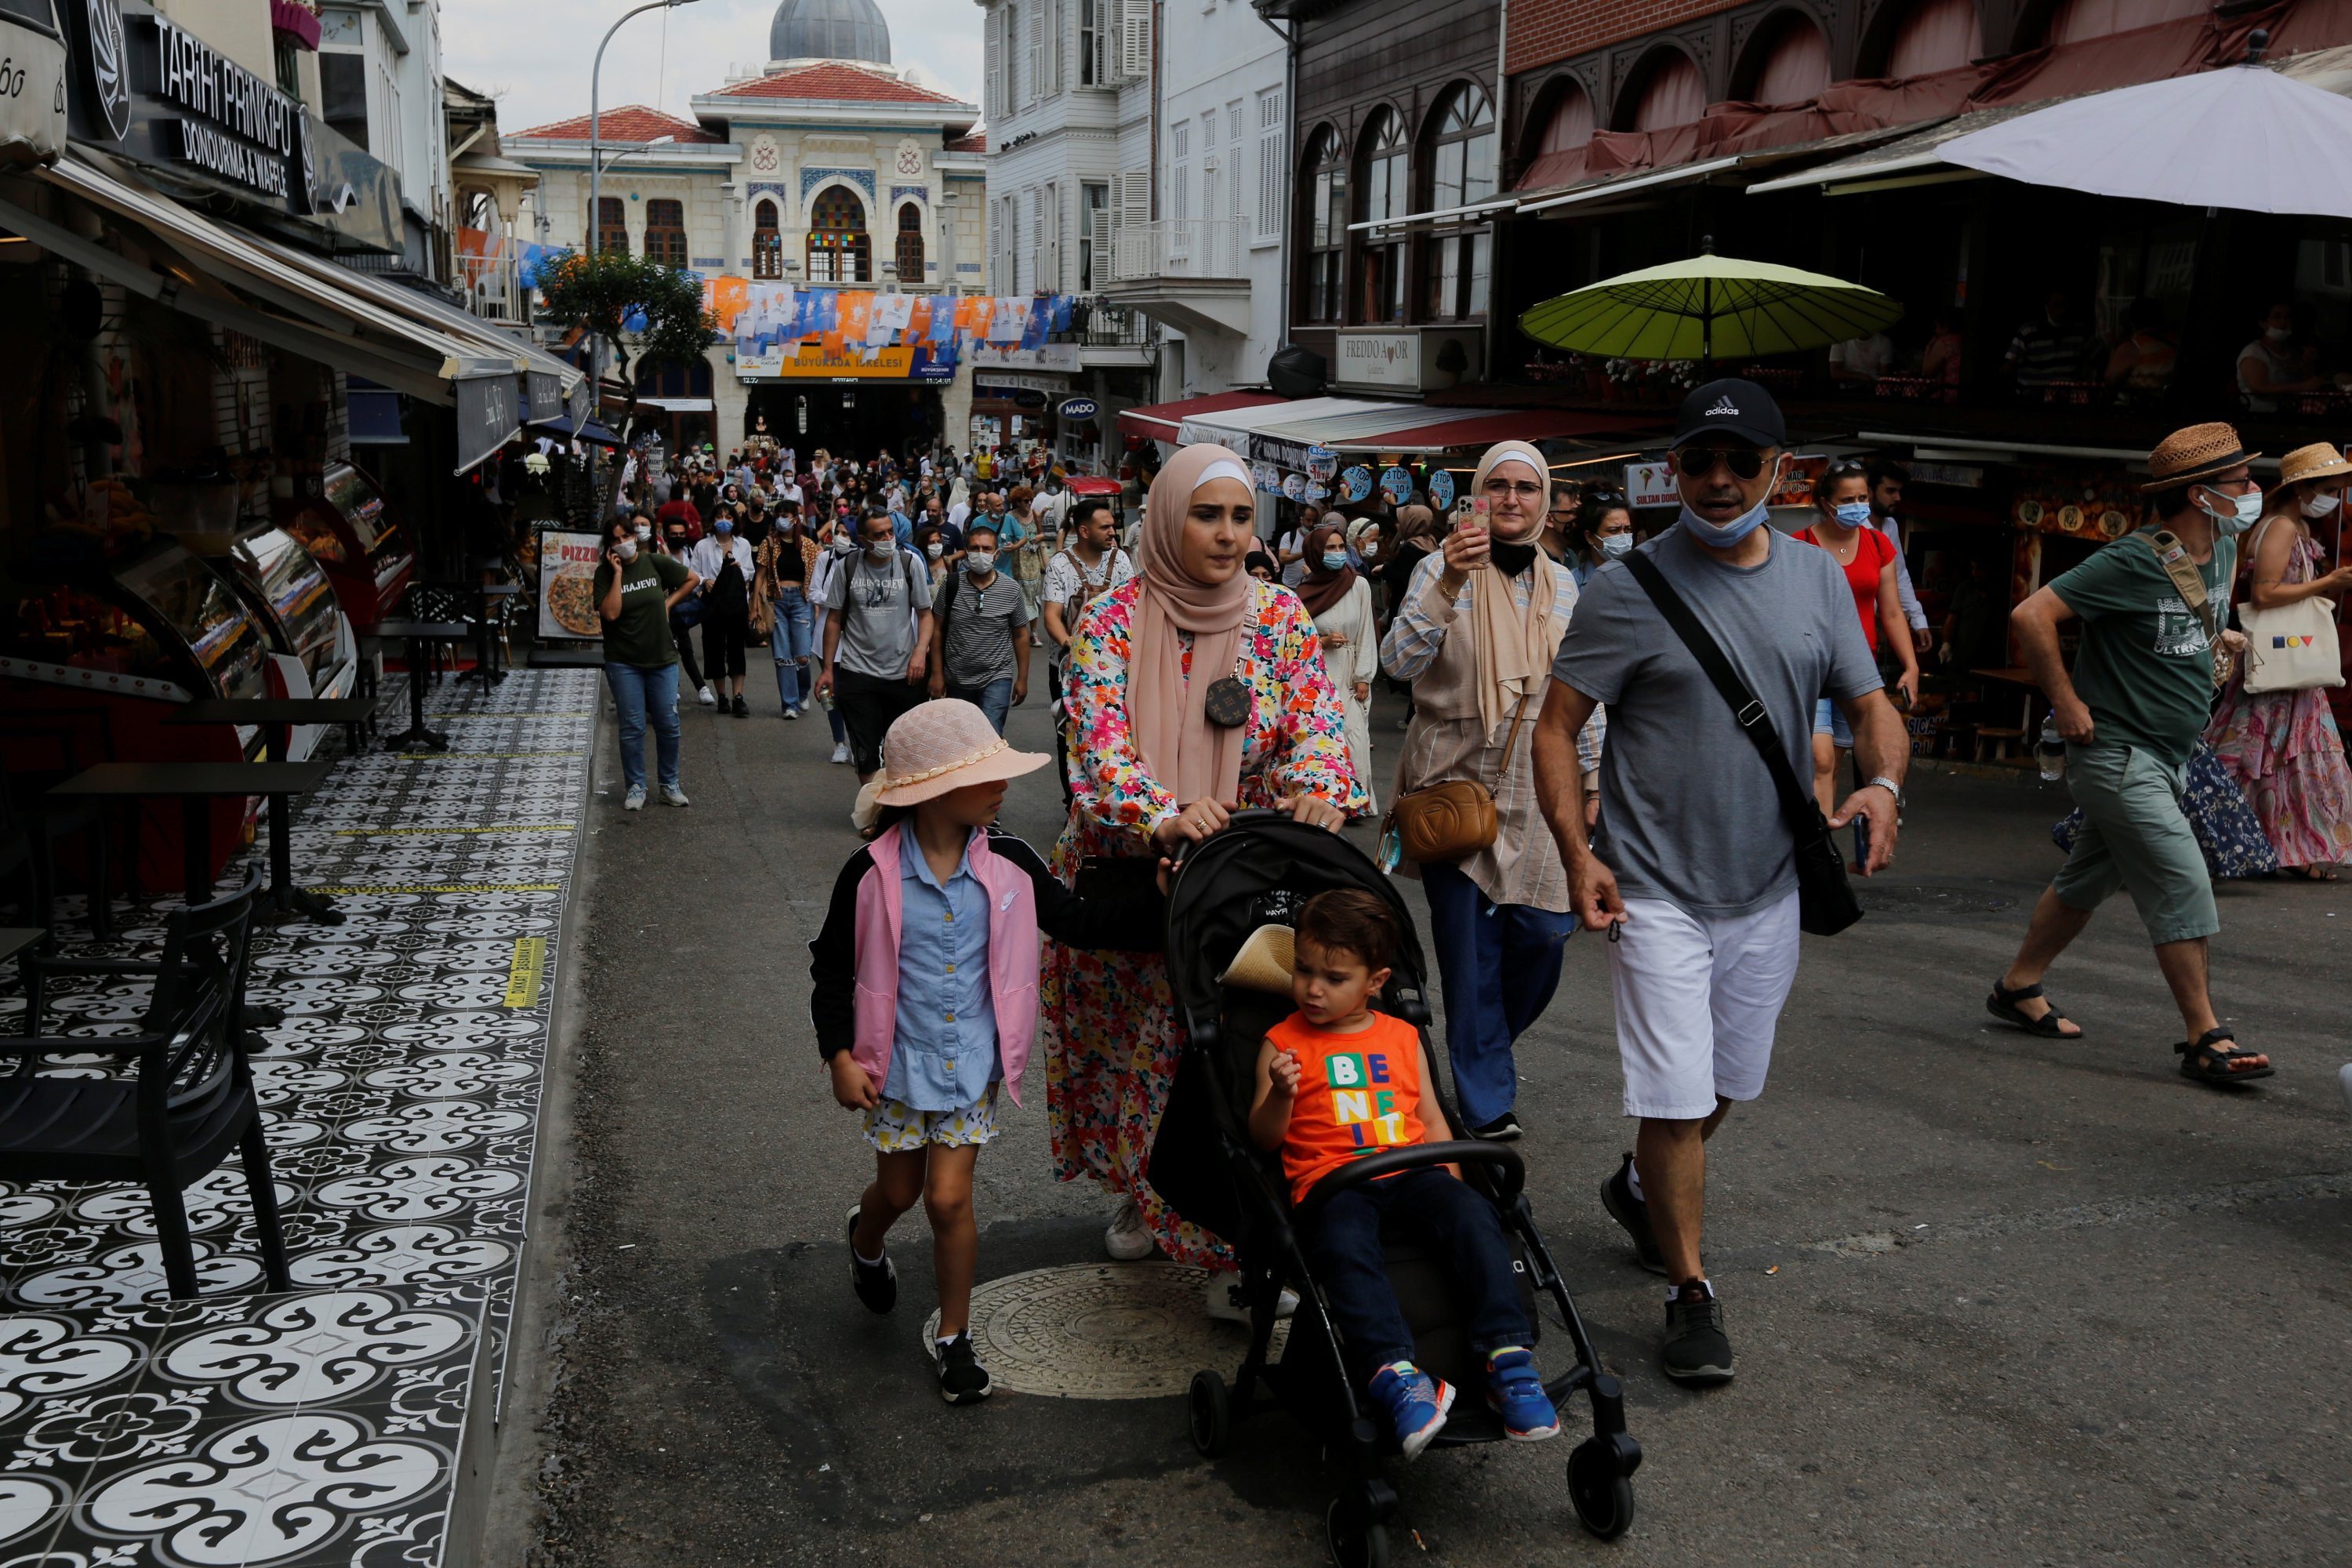 Foreign tourists visit Büyükada, the largest of the Princes' Islands in the Marmara Sea, off Istanbul, Turkey July 14, 2021. (Reuters Photo)